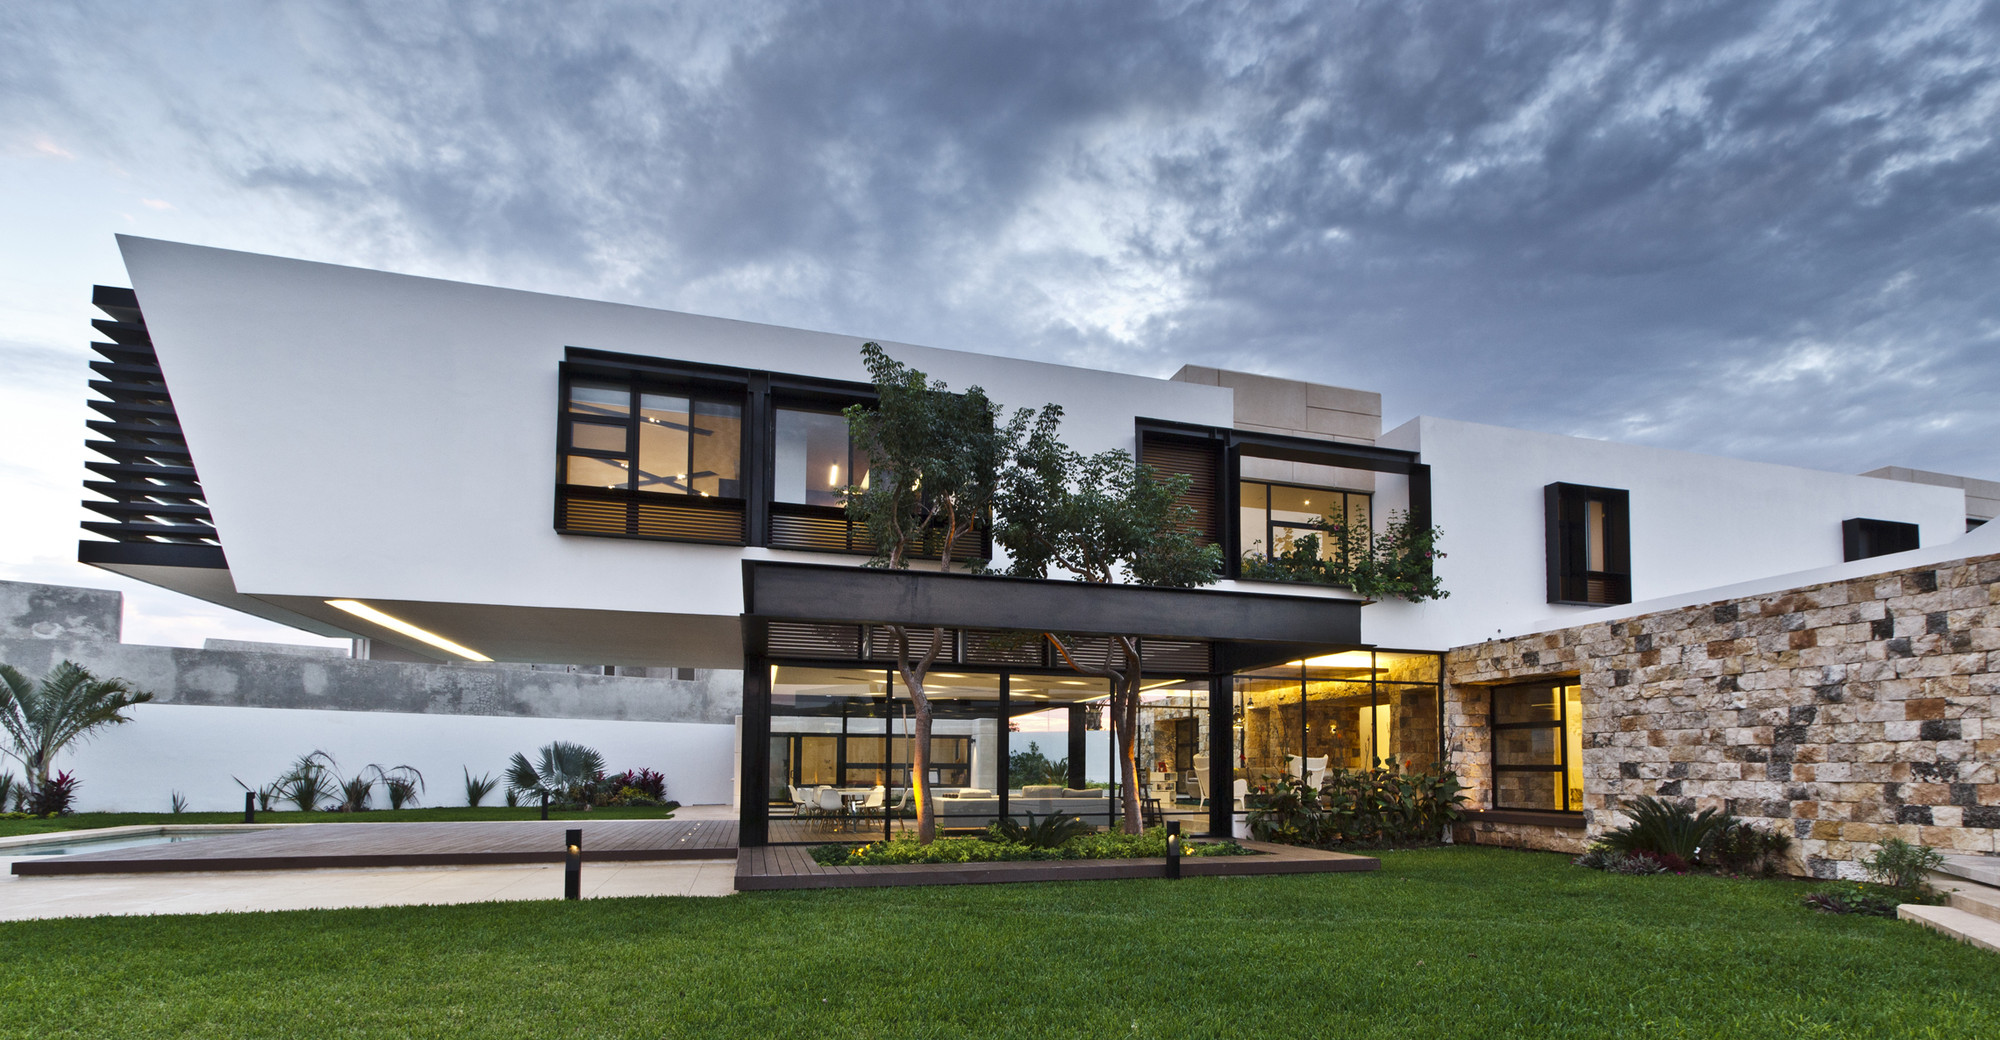 Casa temoz n carrillo arquitectos y asociados for Case di architetti famosi